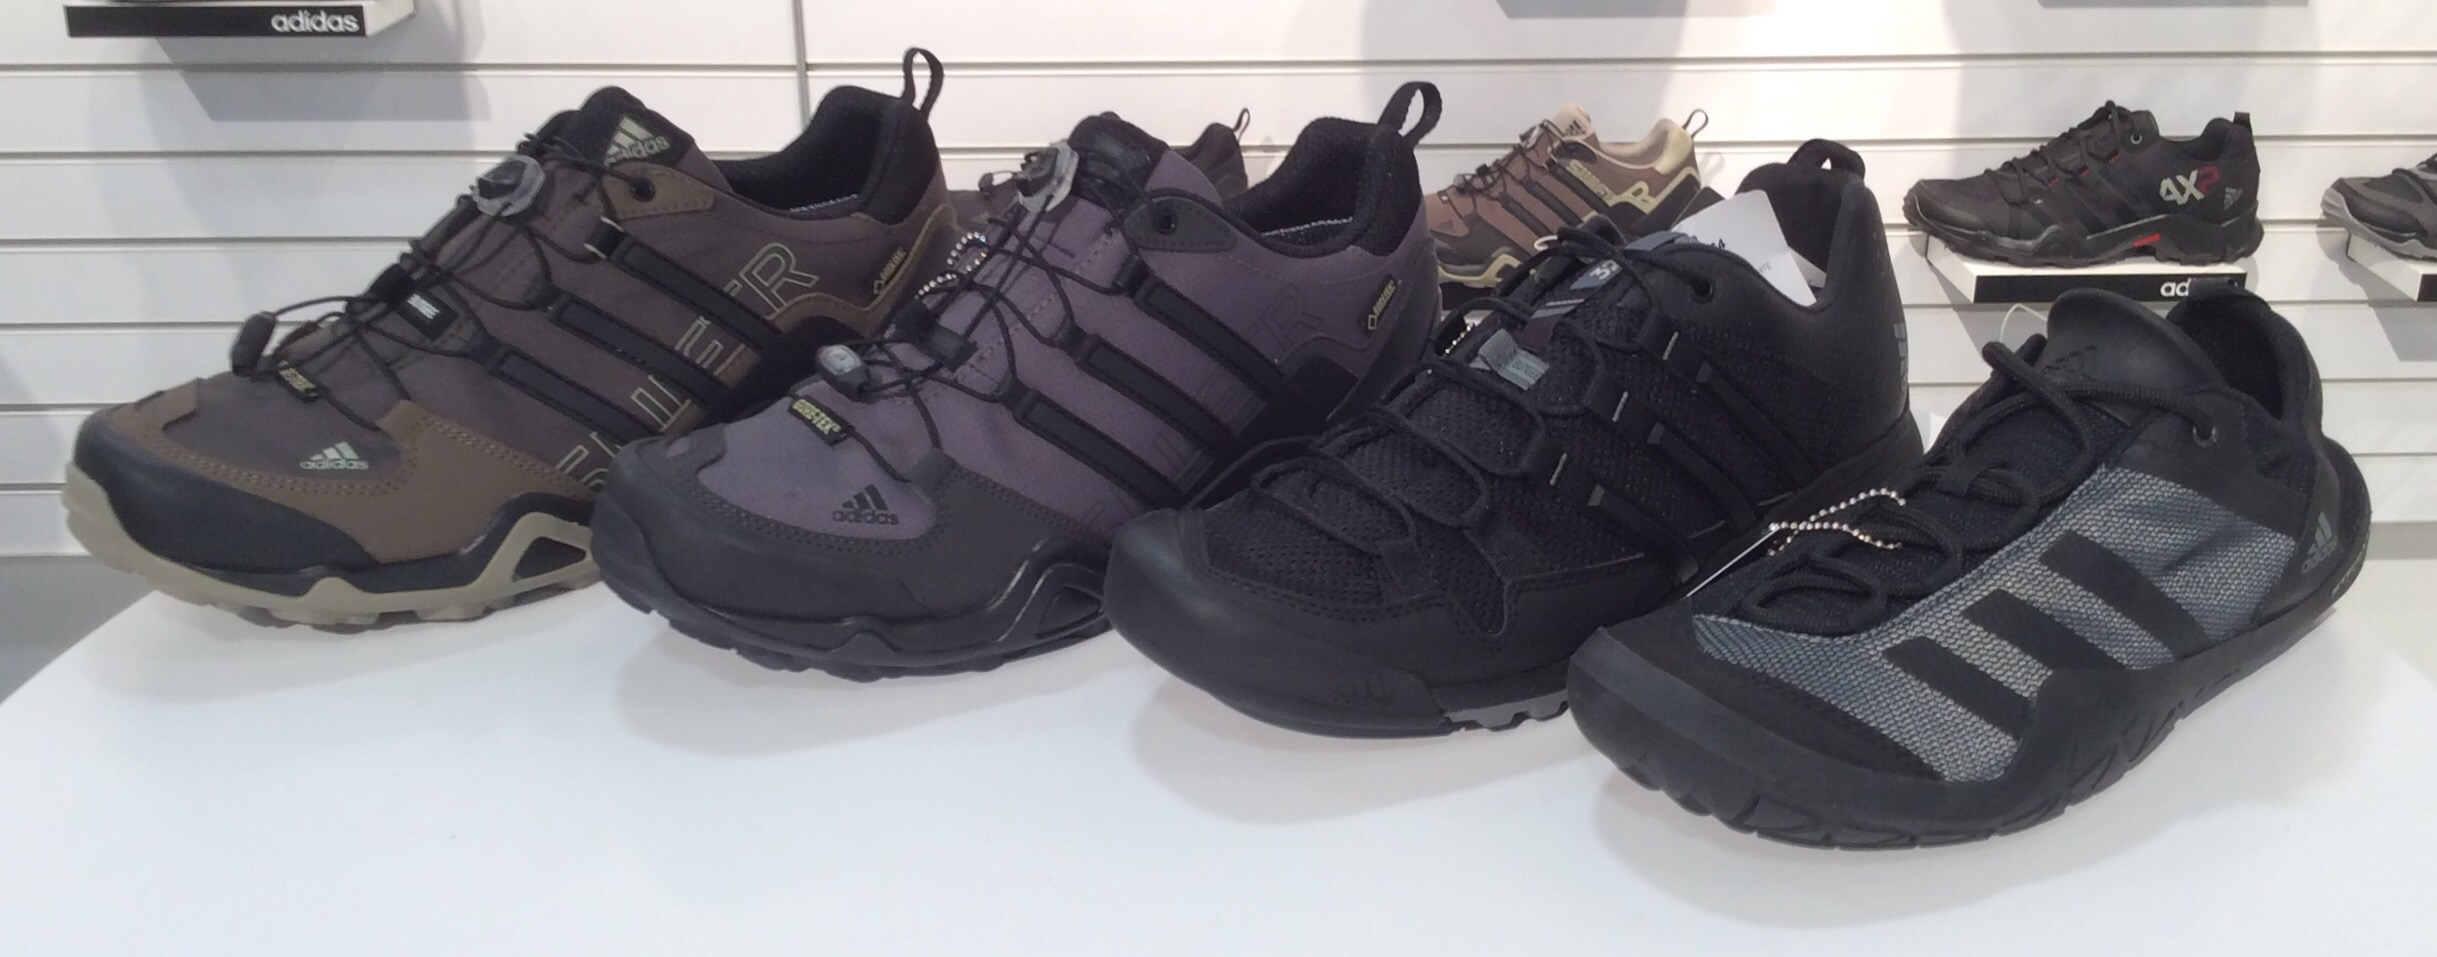 OR - Adidas Outdoor - Soldier Systems Daily